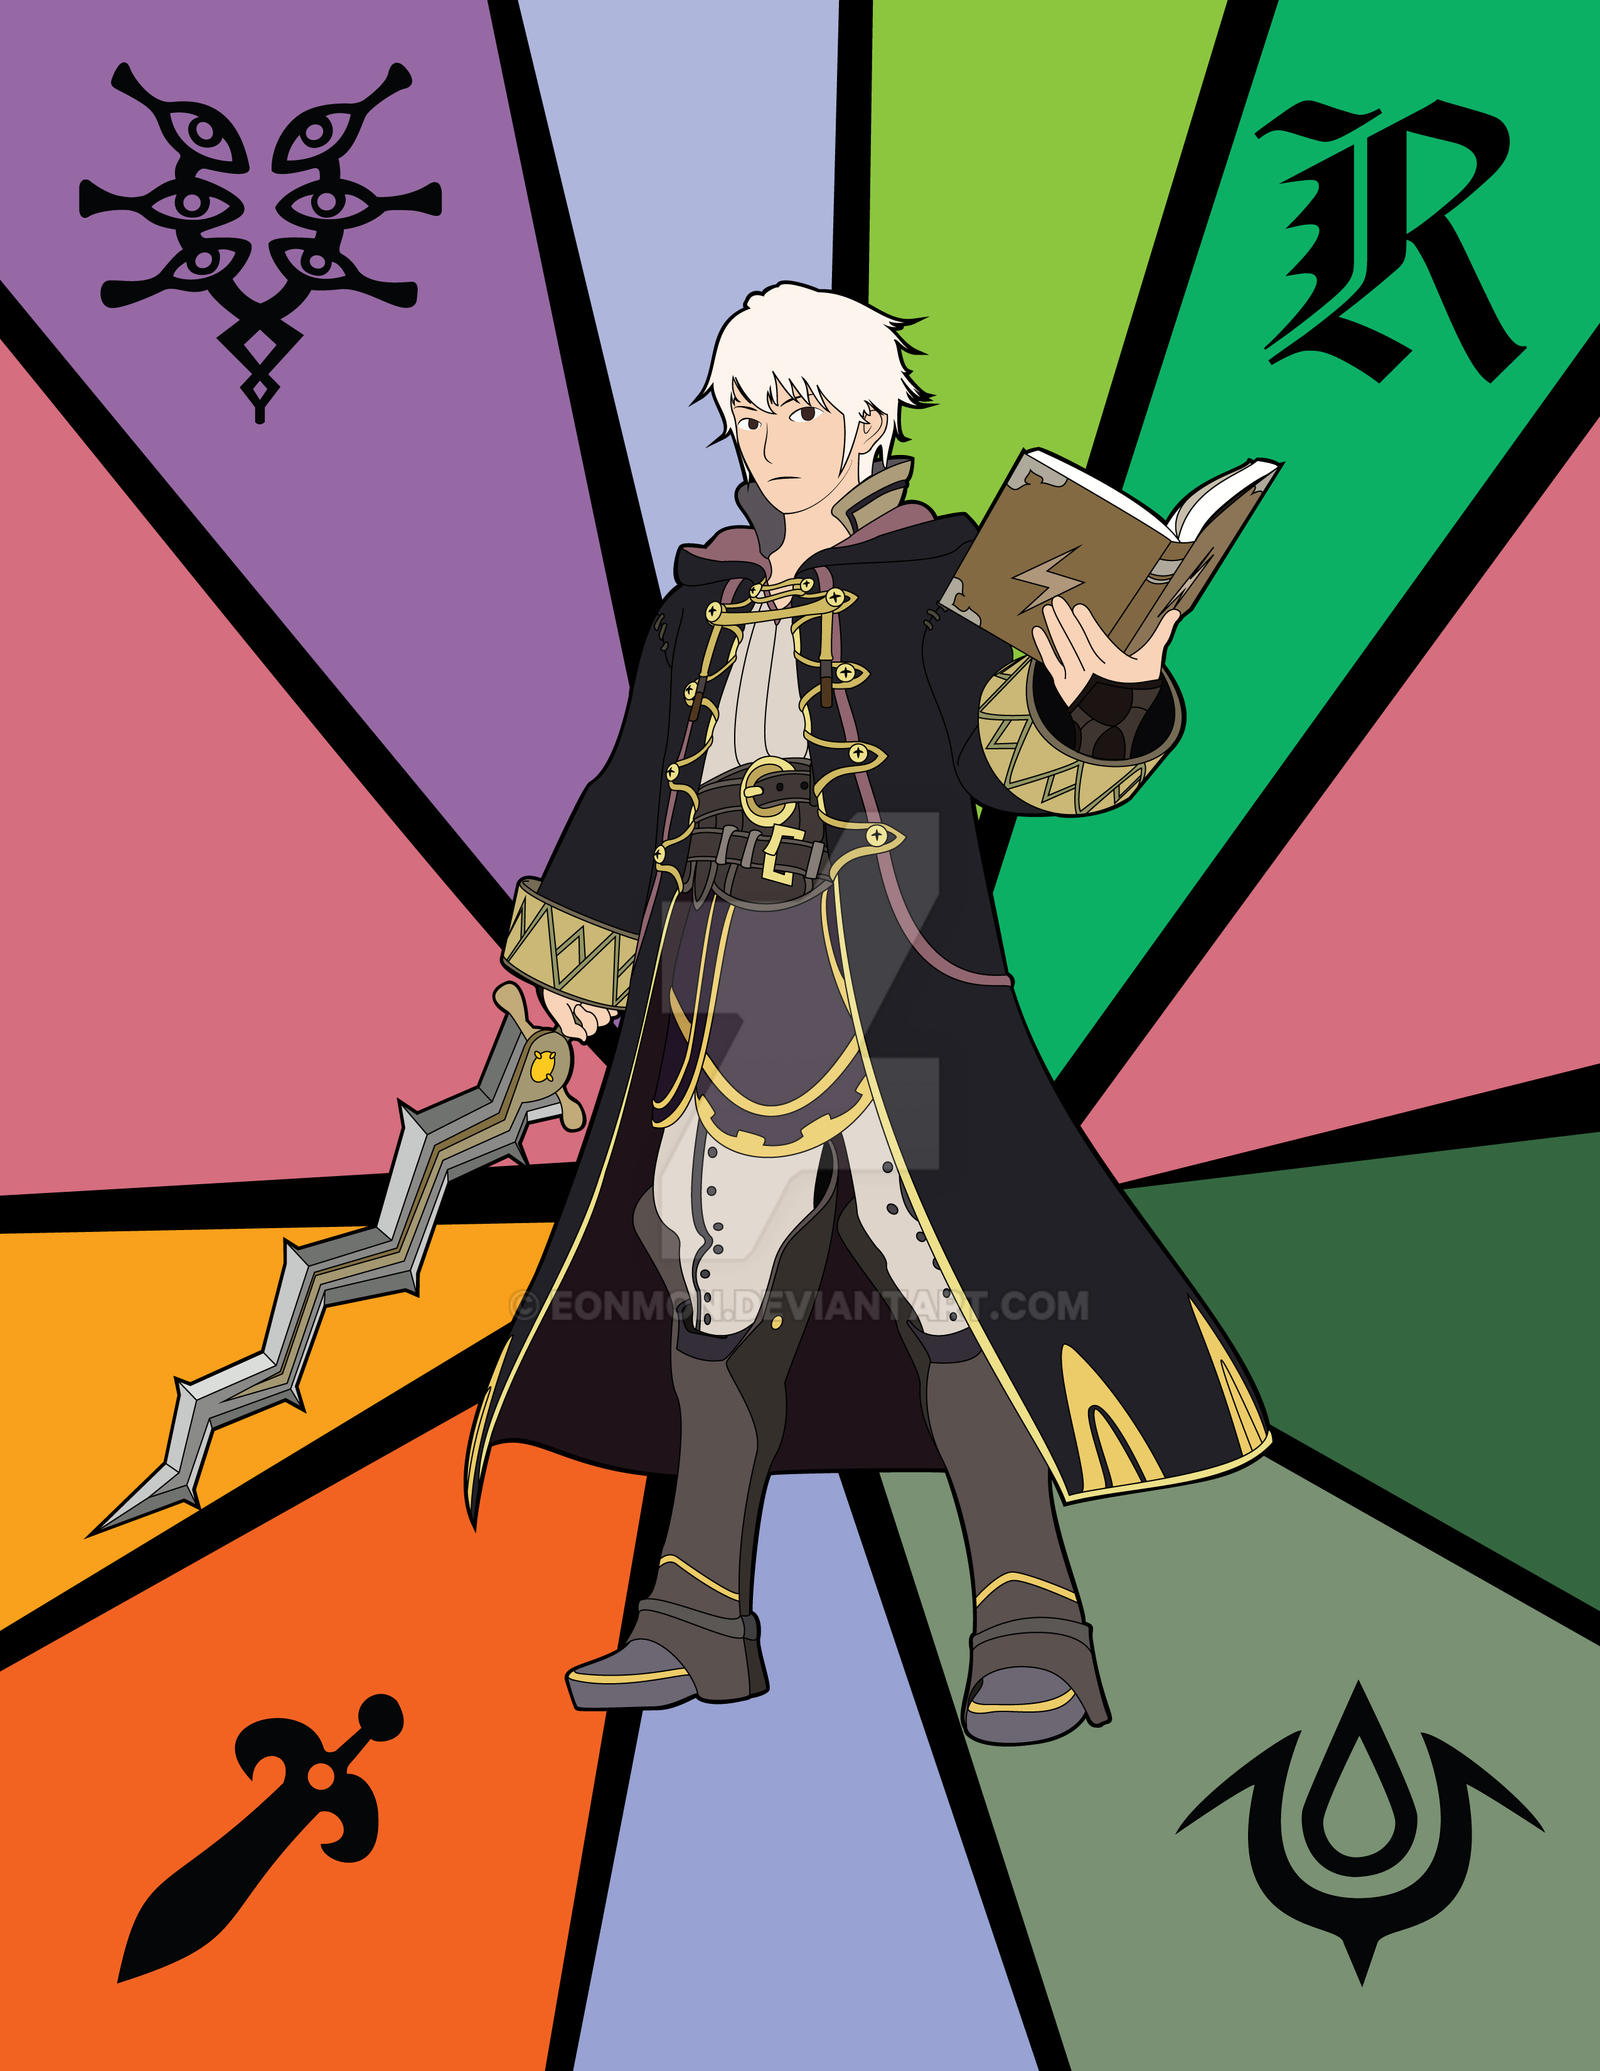 Stained Glass - Robin (SSB4) by EonMon on DeviantArt